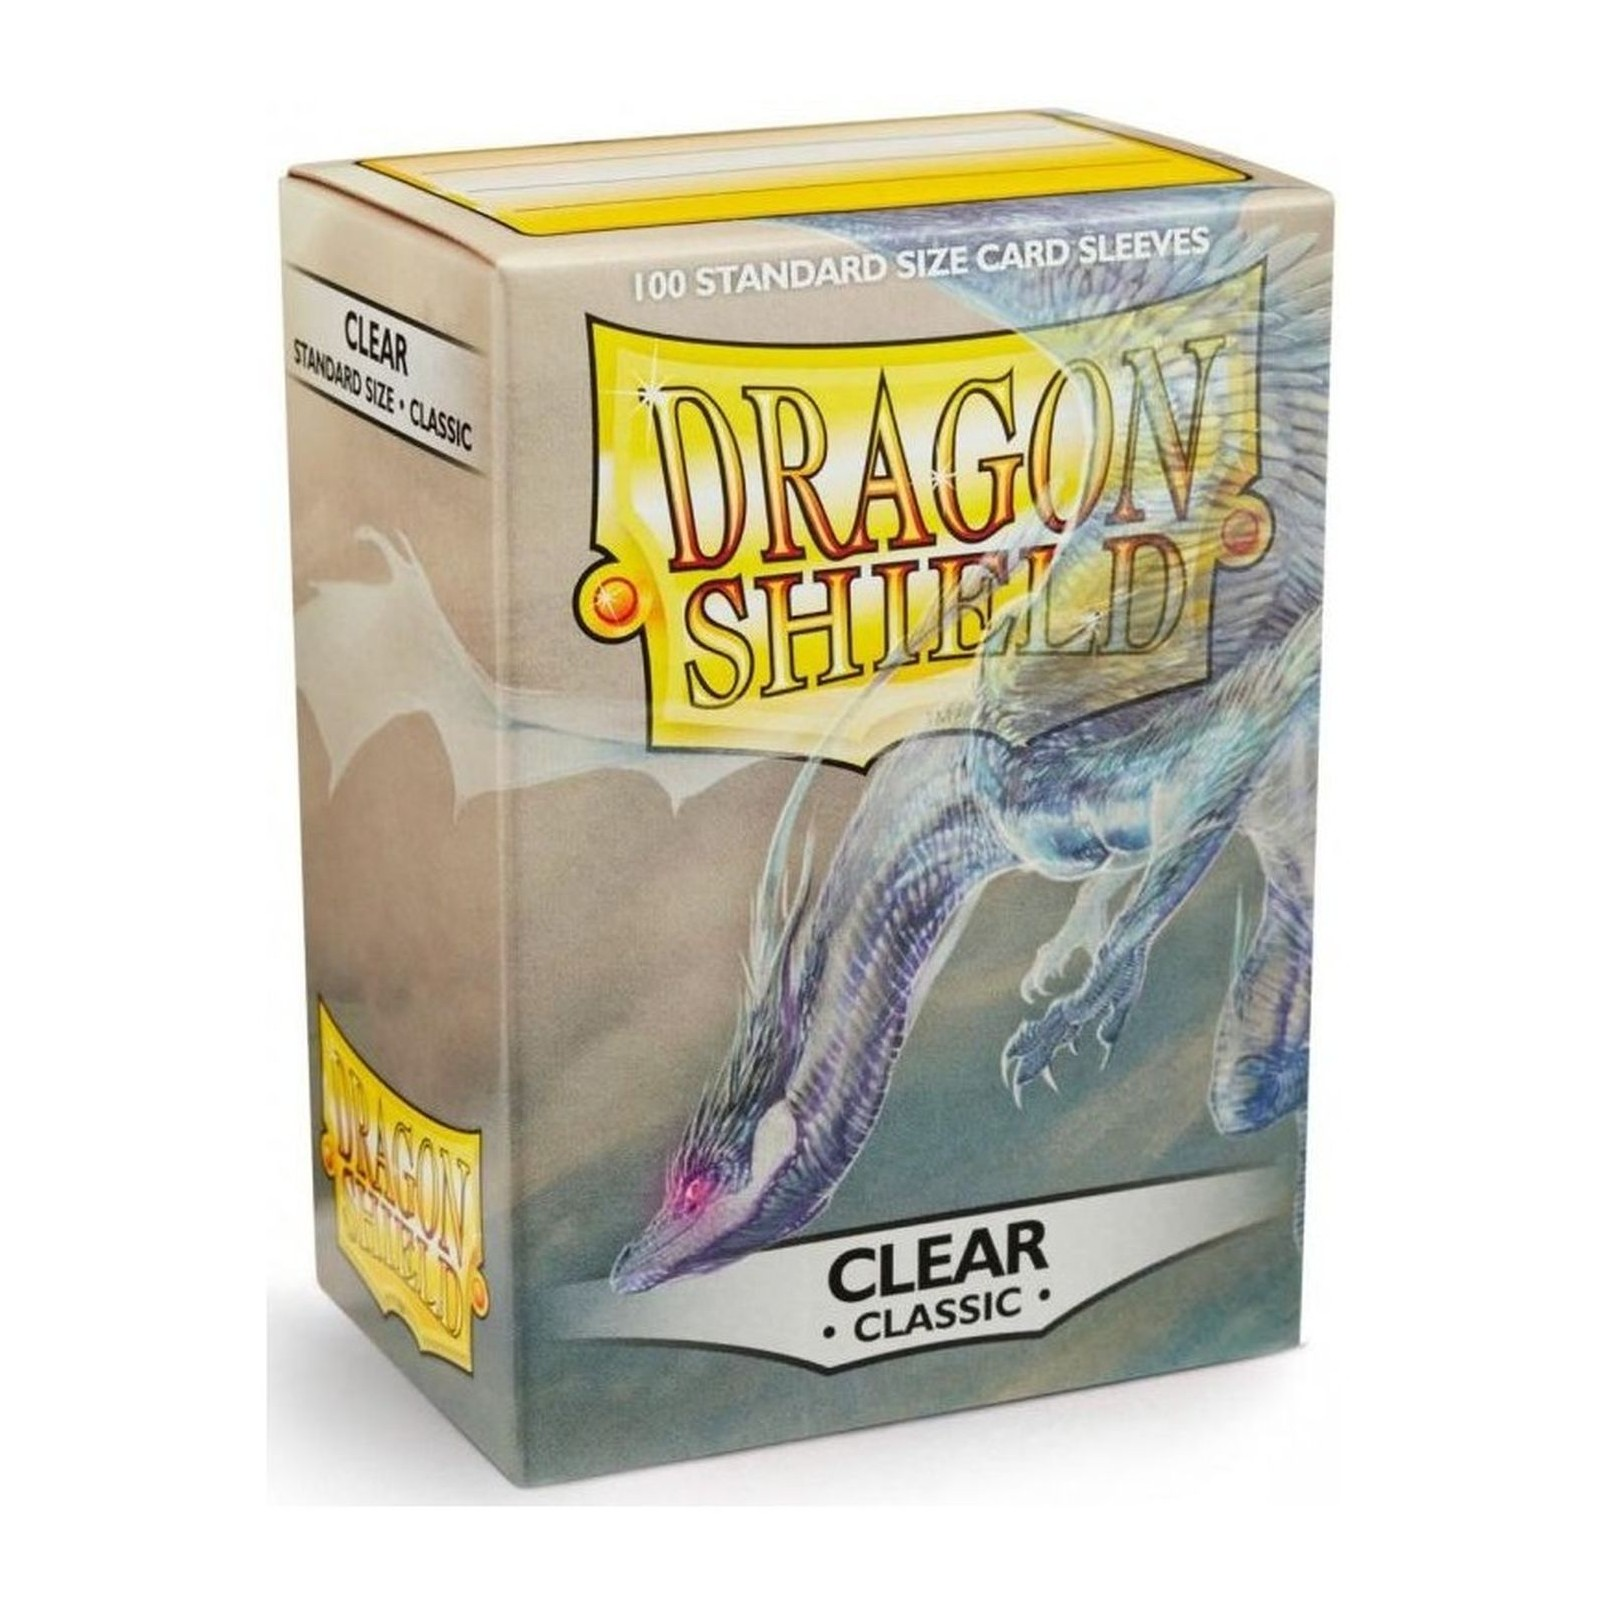 Dragon Shield - Standard Sleeves - Classic Clear (100)